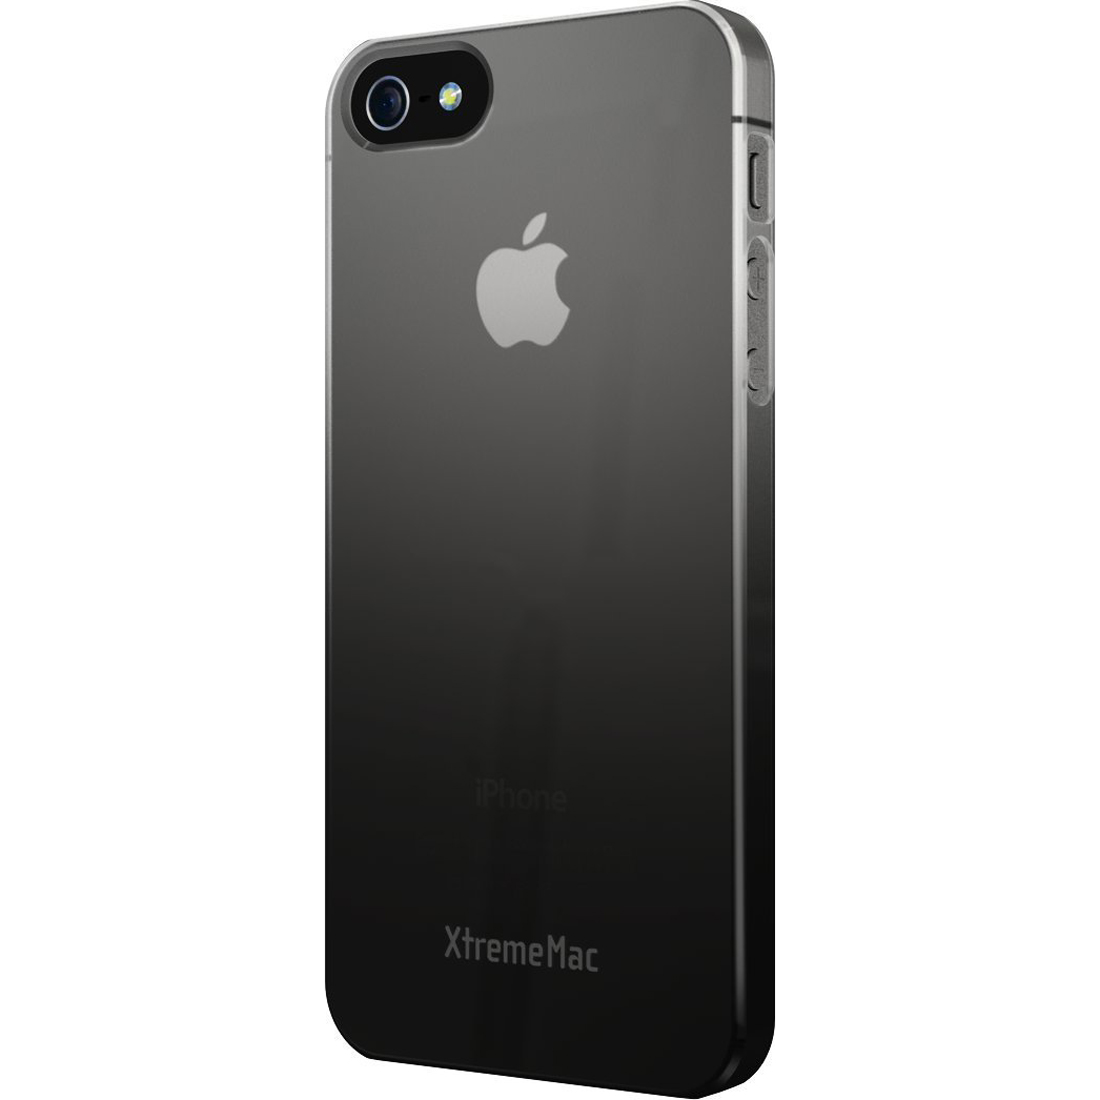 XtremeMac Microshield Case for iPhone 5/5S Fade - Black/Gray